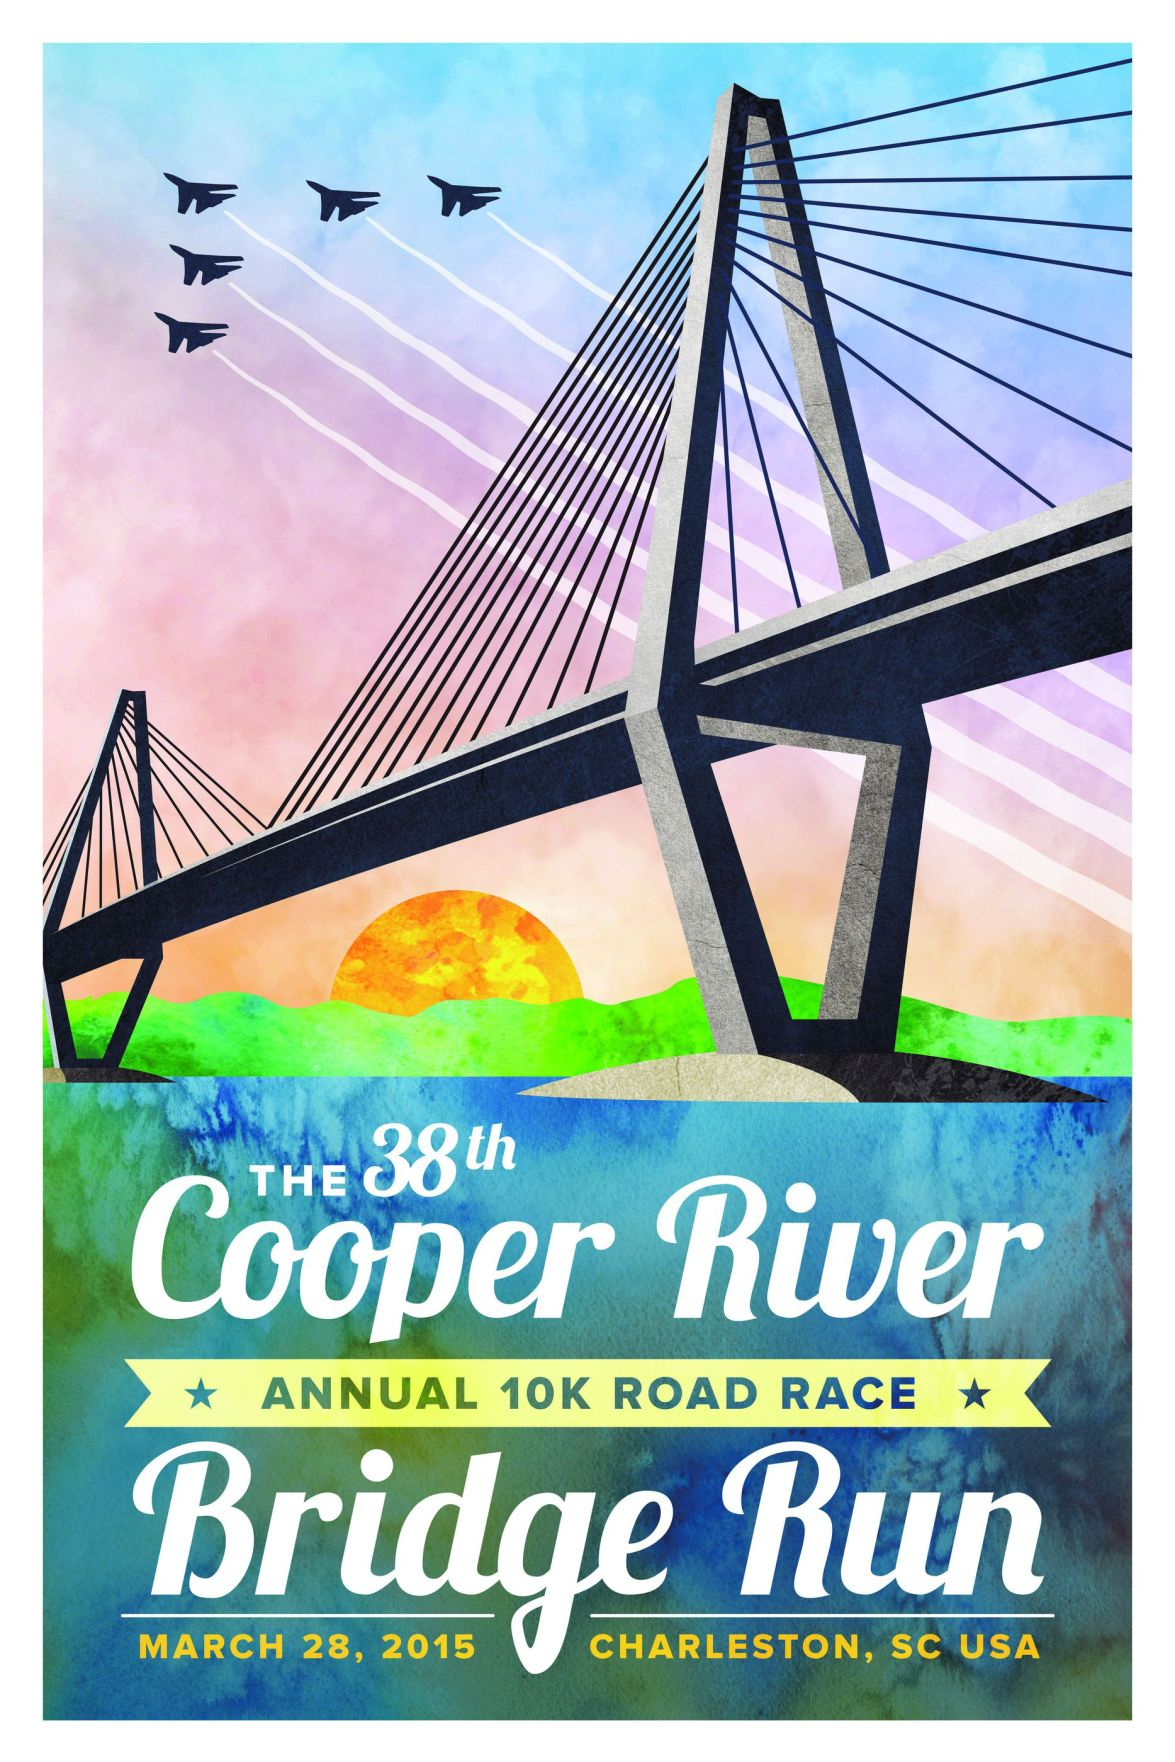 Cooper River Bridge Run design for 2015 is unveiled, features fighter jets